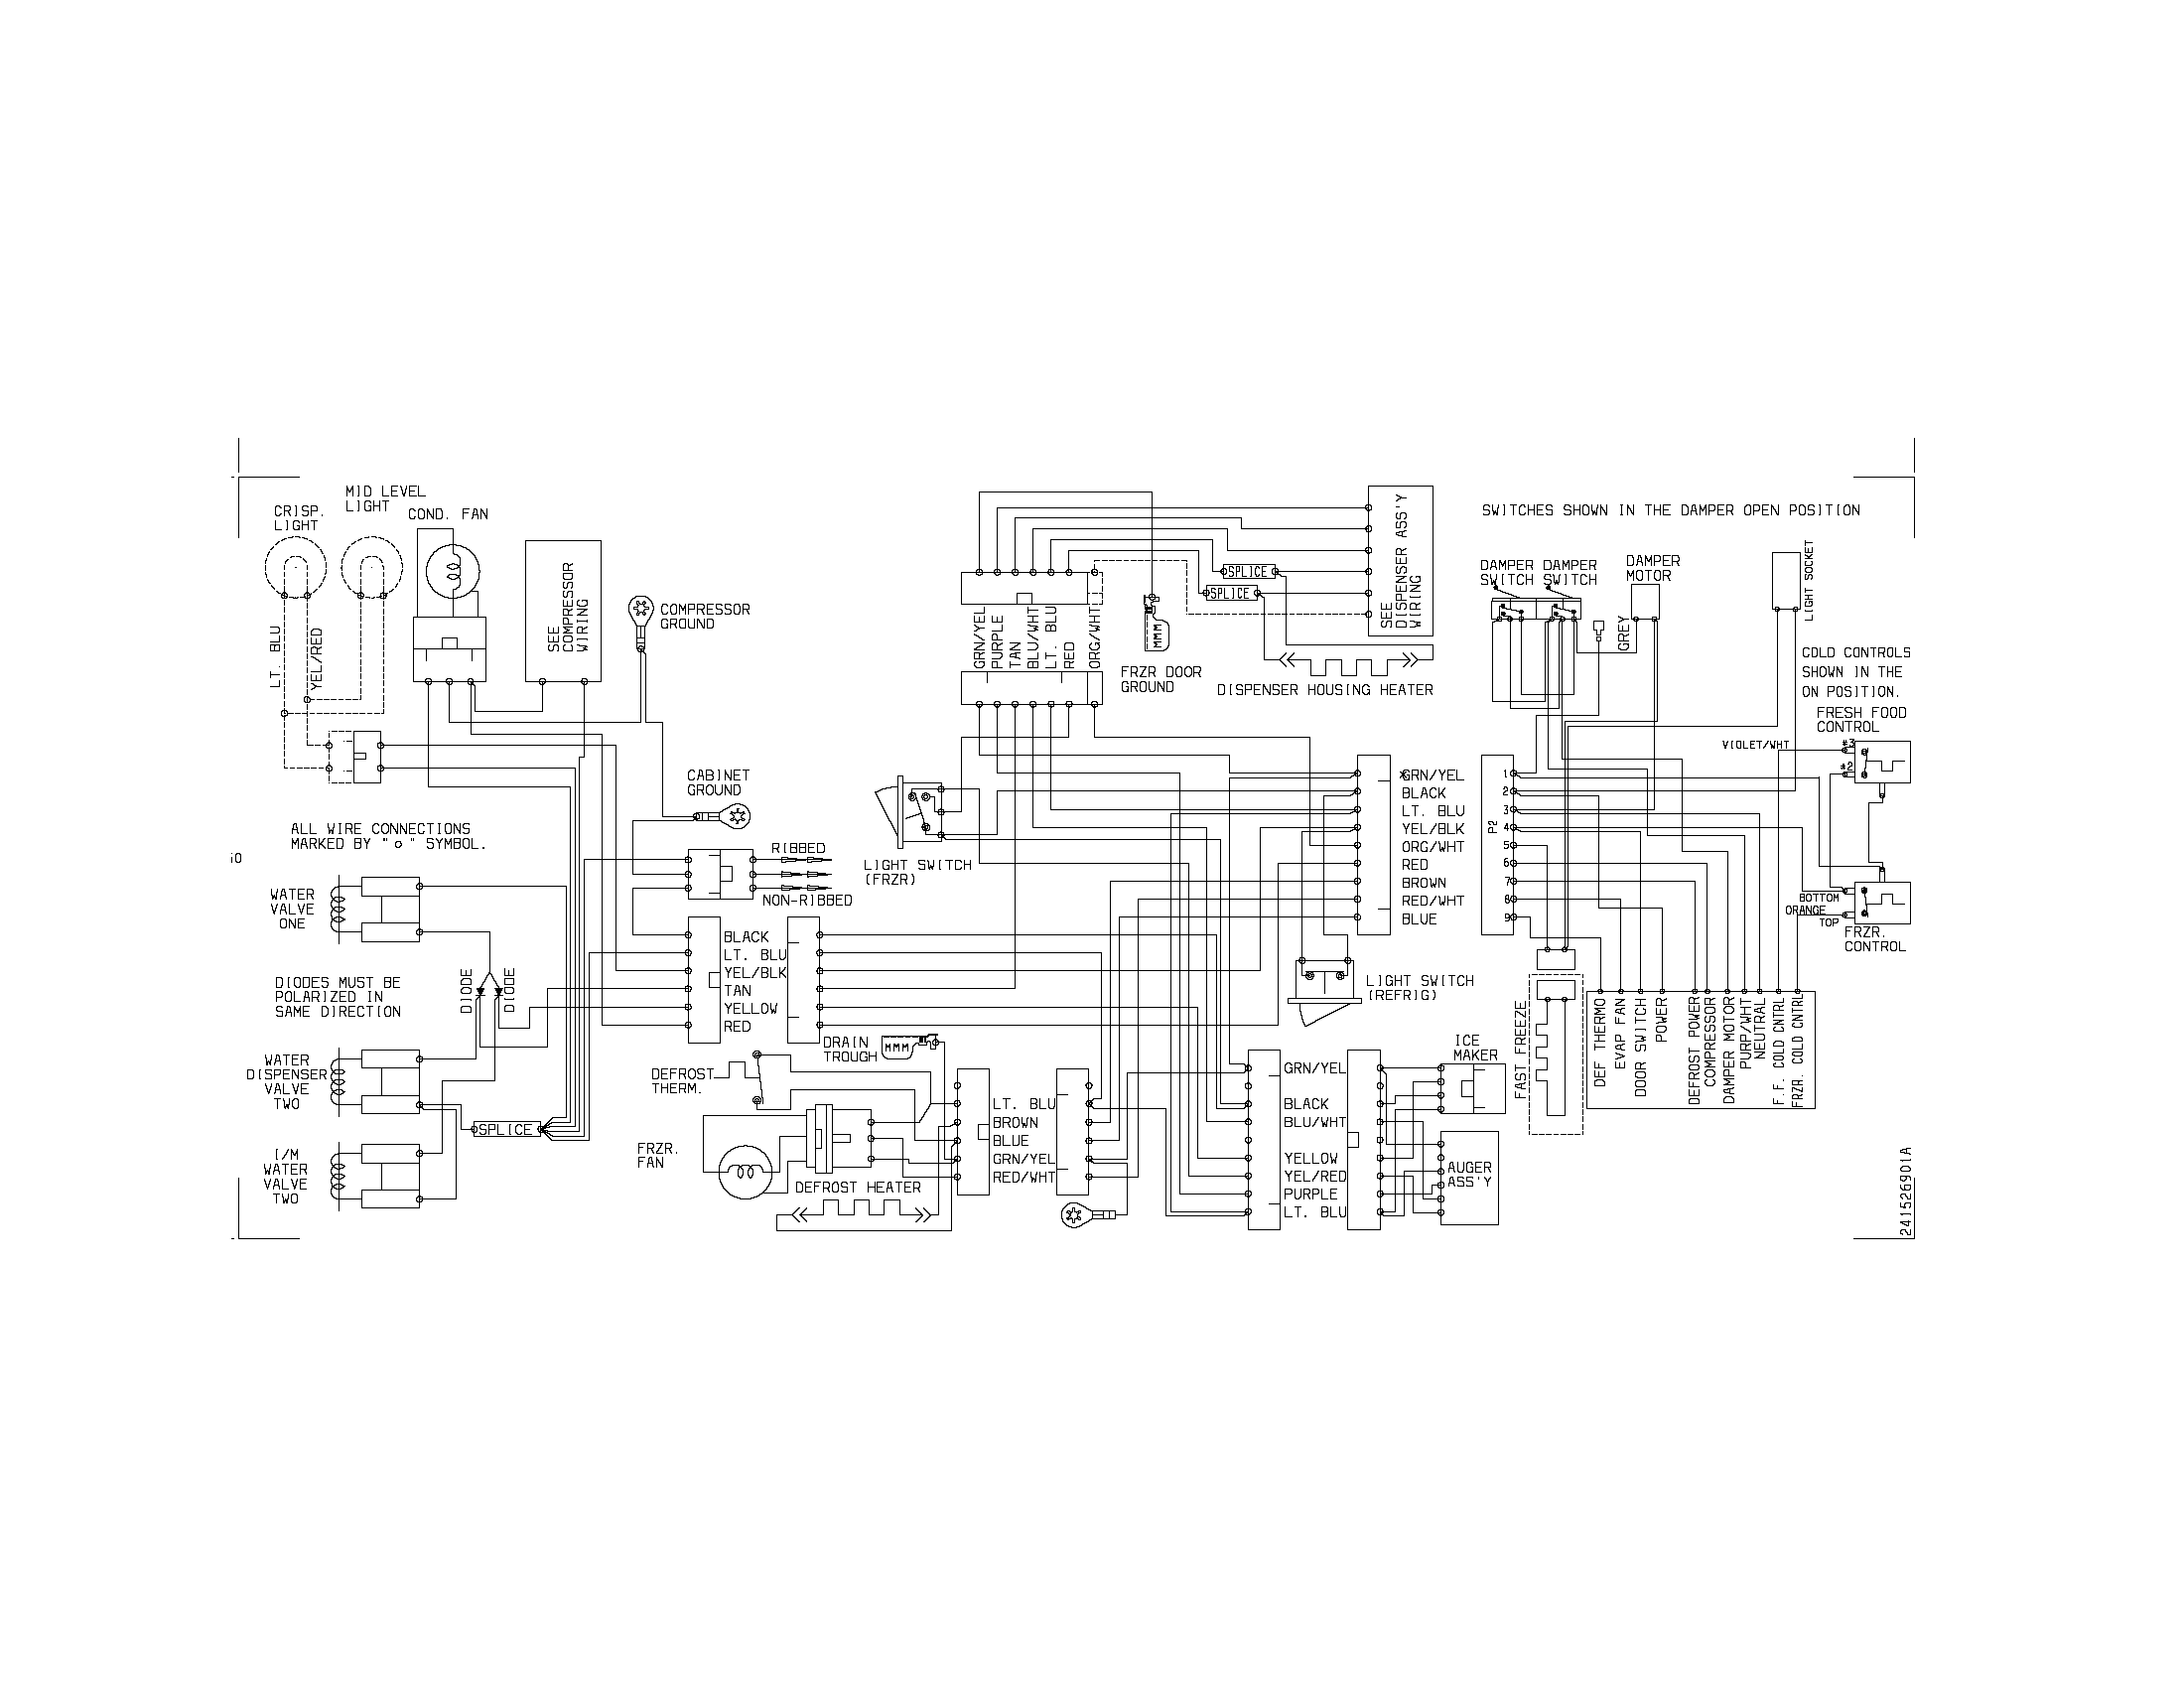 Commercial Cooler Control Panel Wiring Diagram